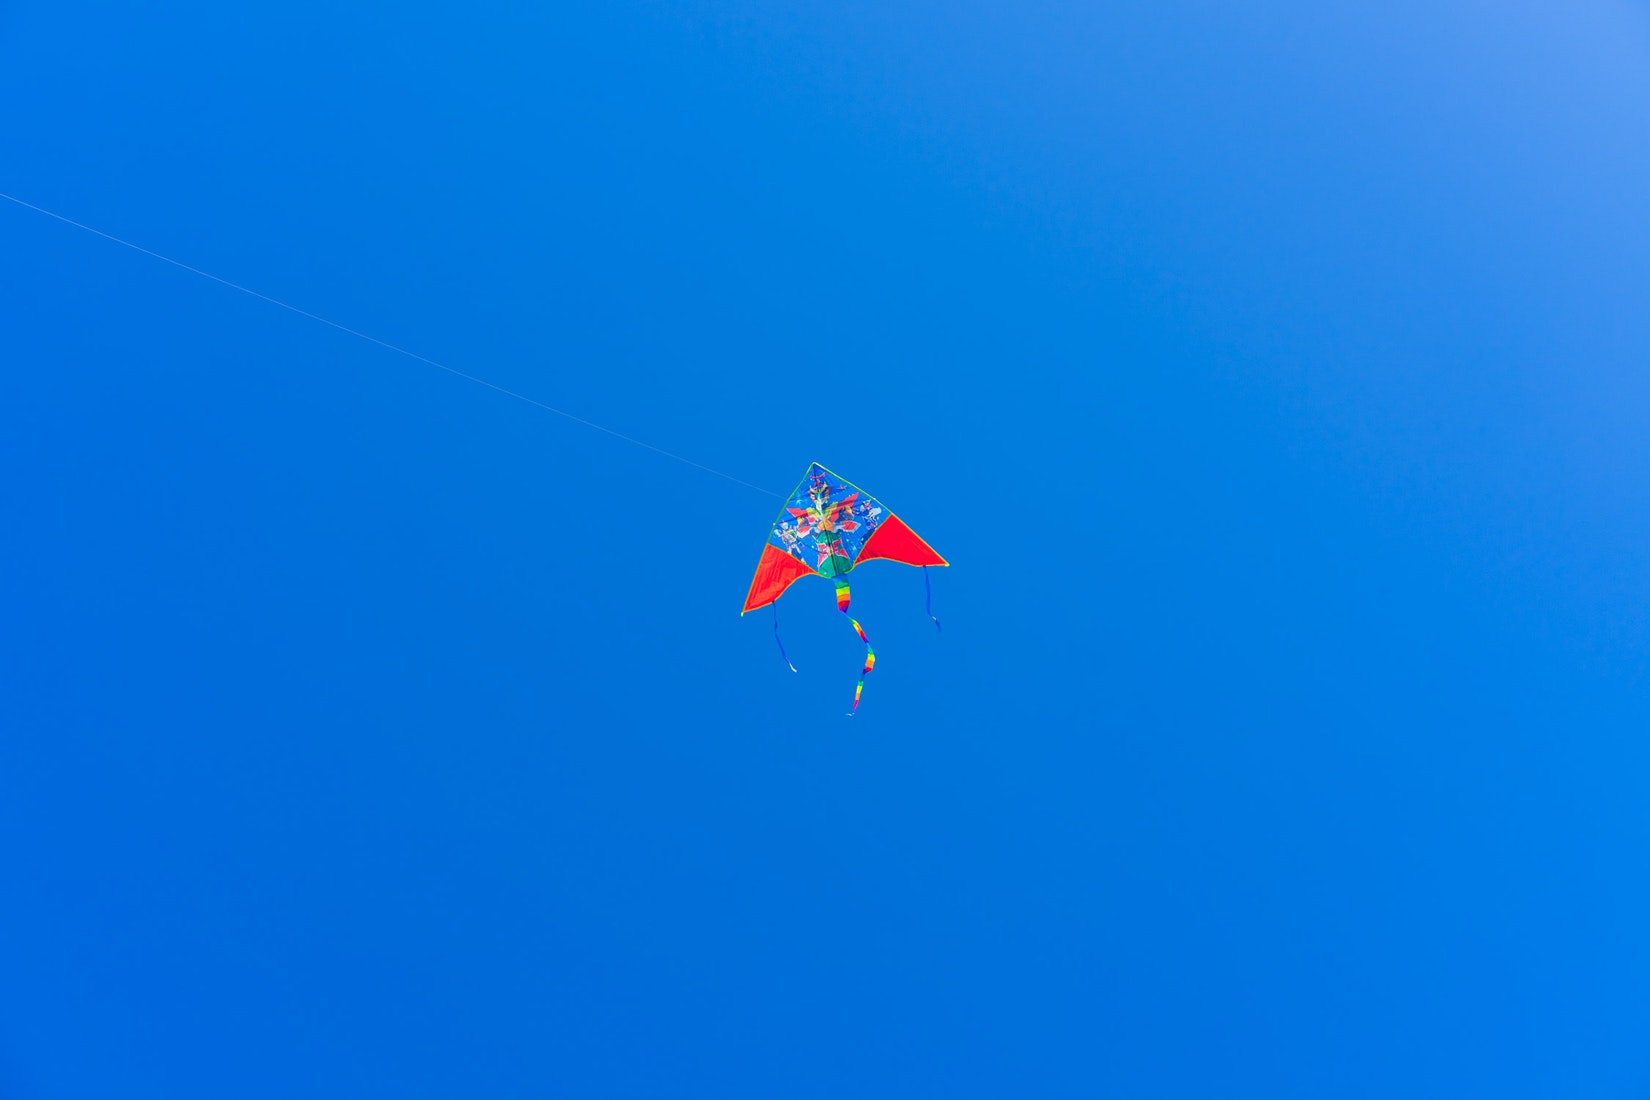 A kite flying in the sky at Charles Clore Park, Tel Aviv